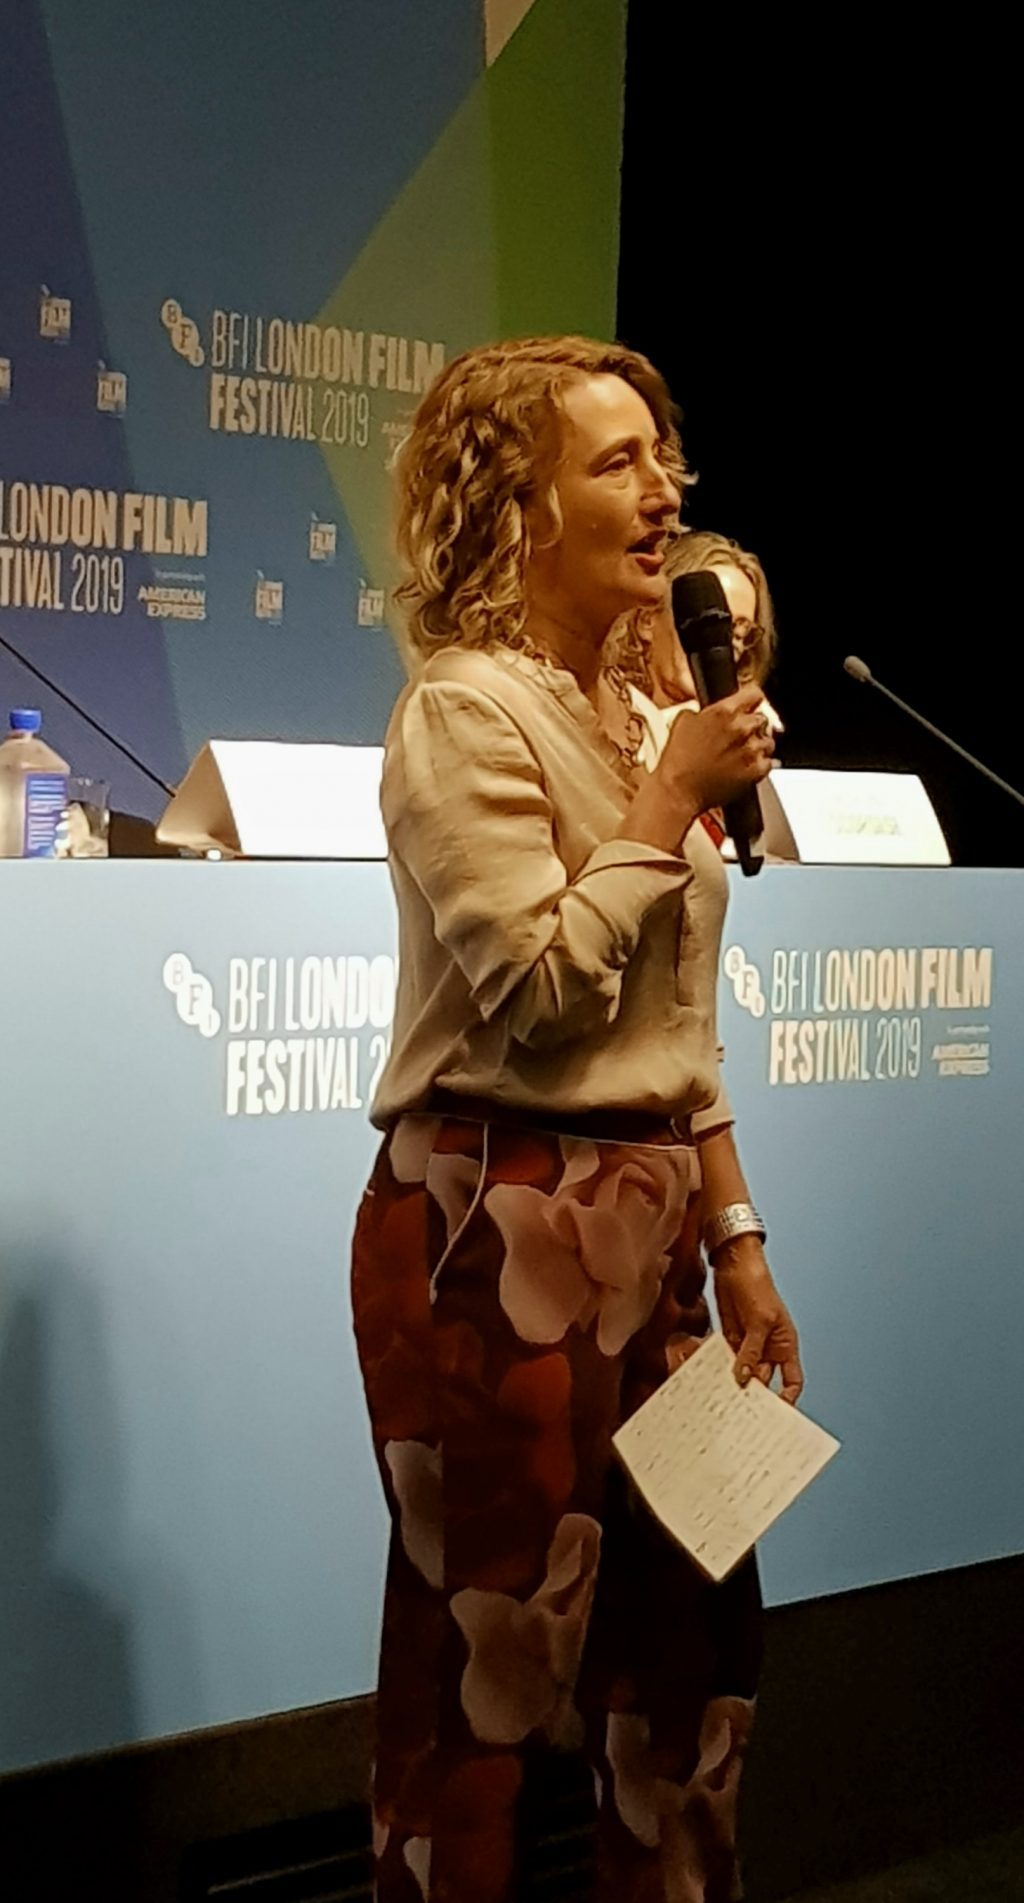 Tricia Tuttle, Artistic Director of the London Film Festival